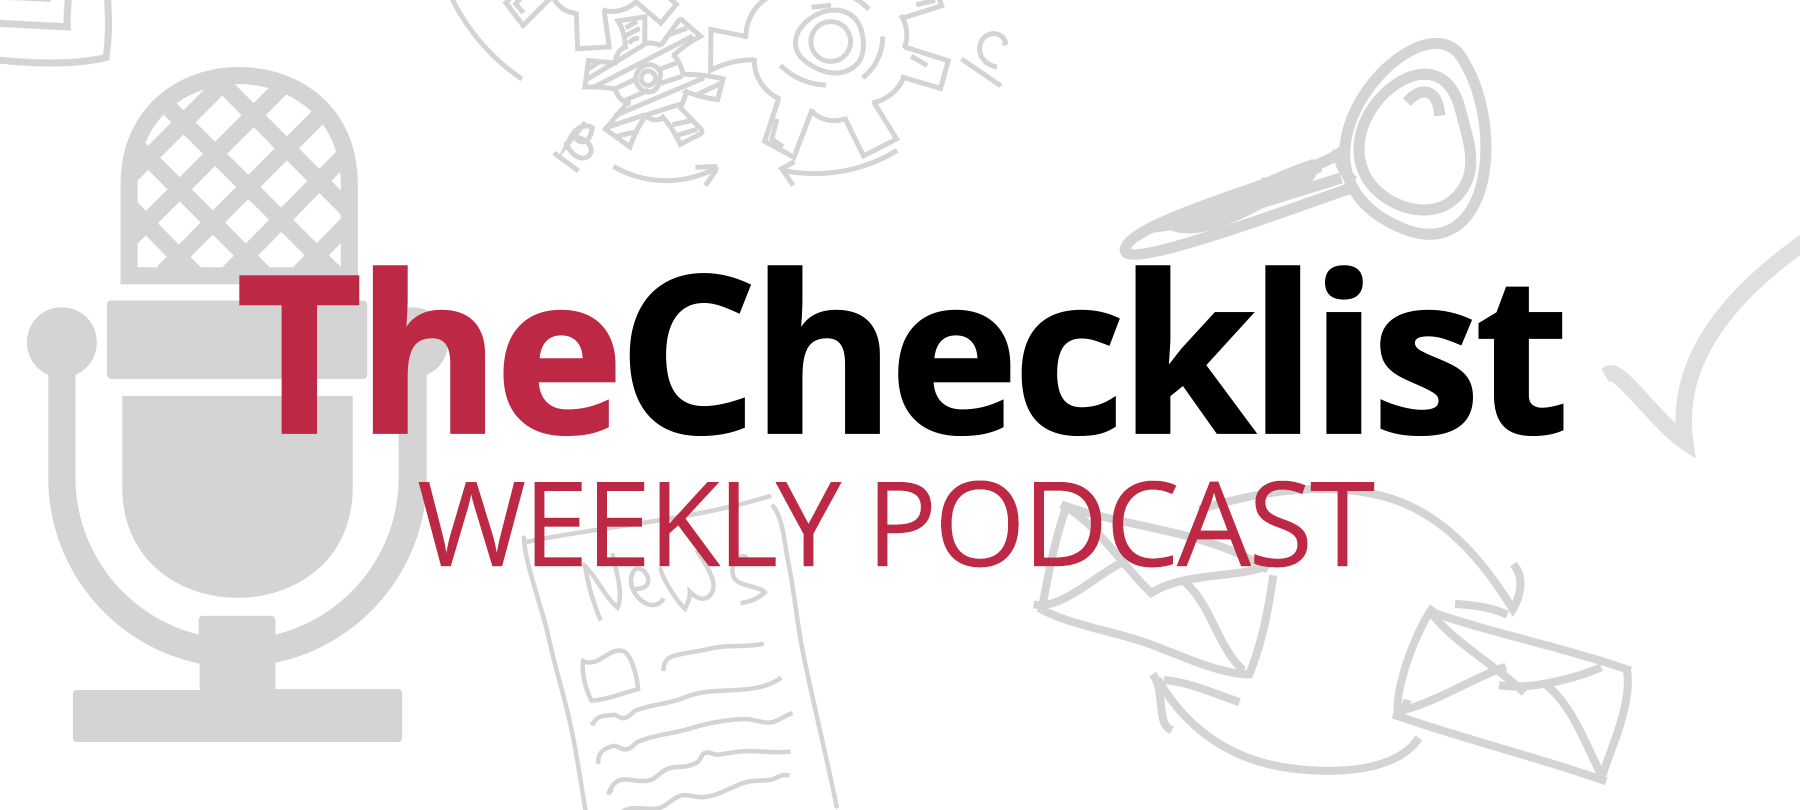 Episode: Checklist 54: The Equifax Hack